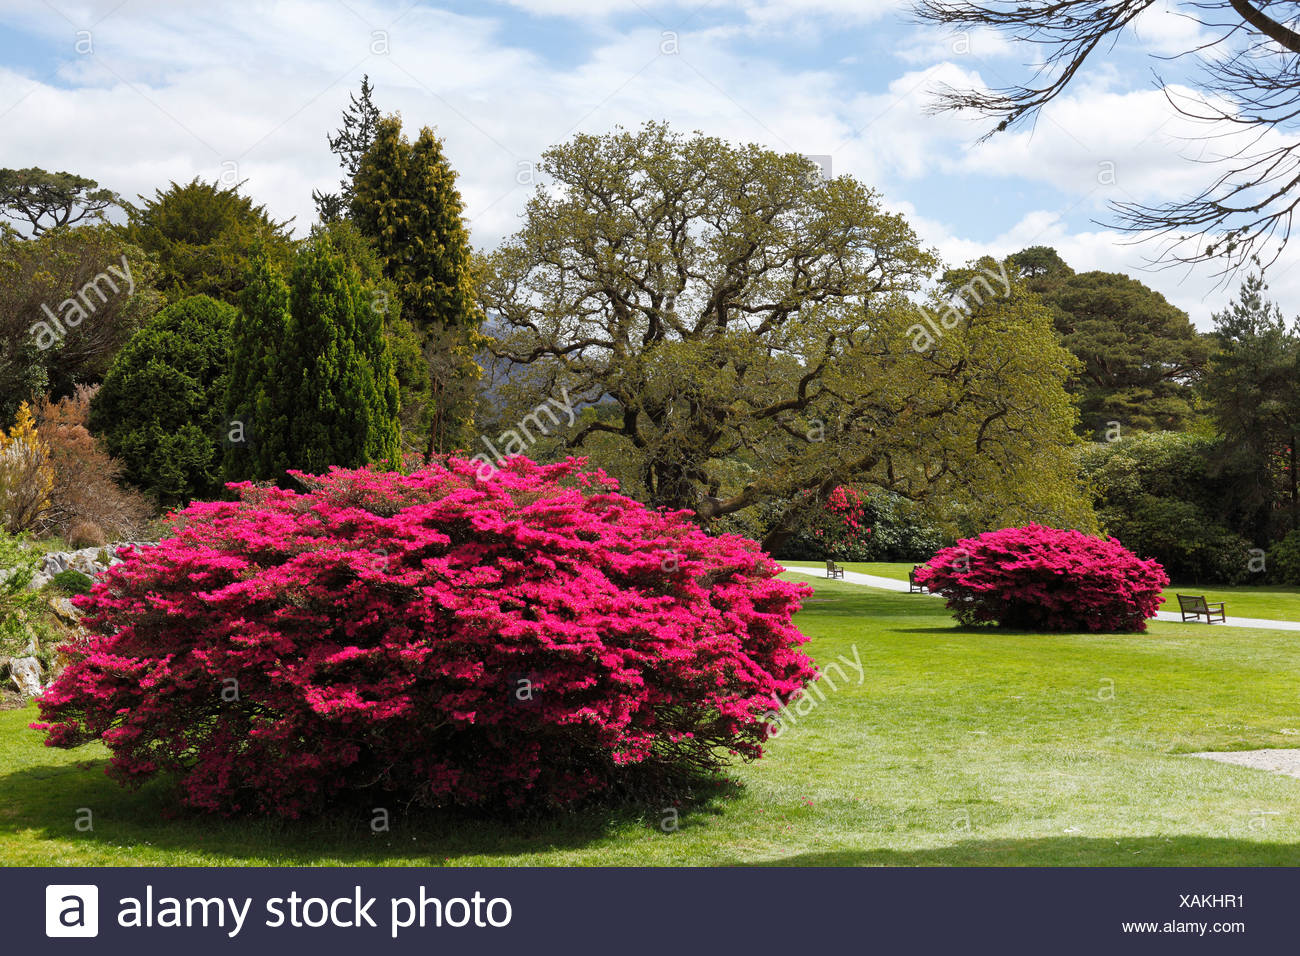 Muckross Gardens in spring, blossoming rhododendron bushes, Killarney National Park, County Kerry, Ireland, British Isles - Stock Image